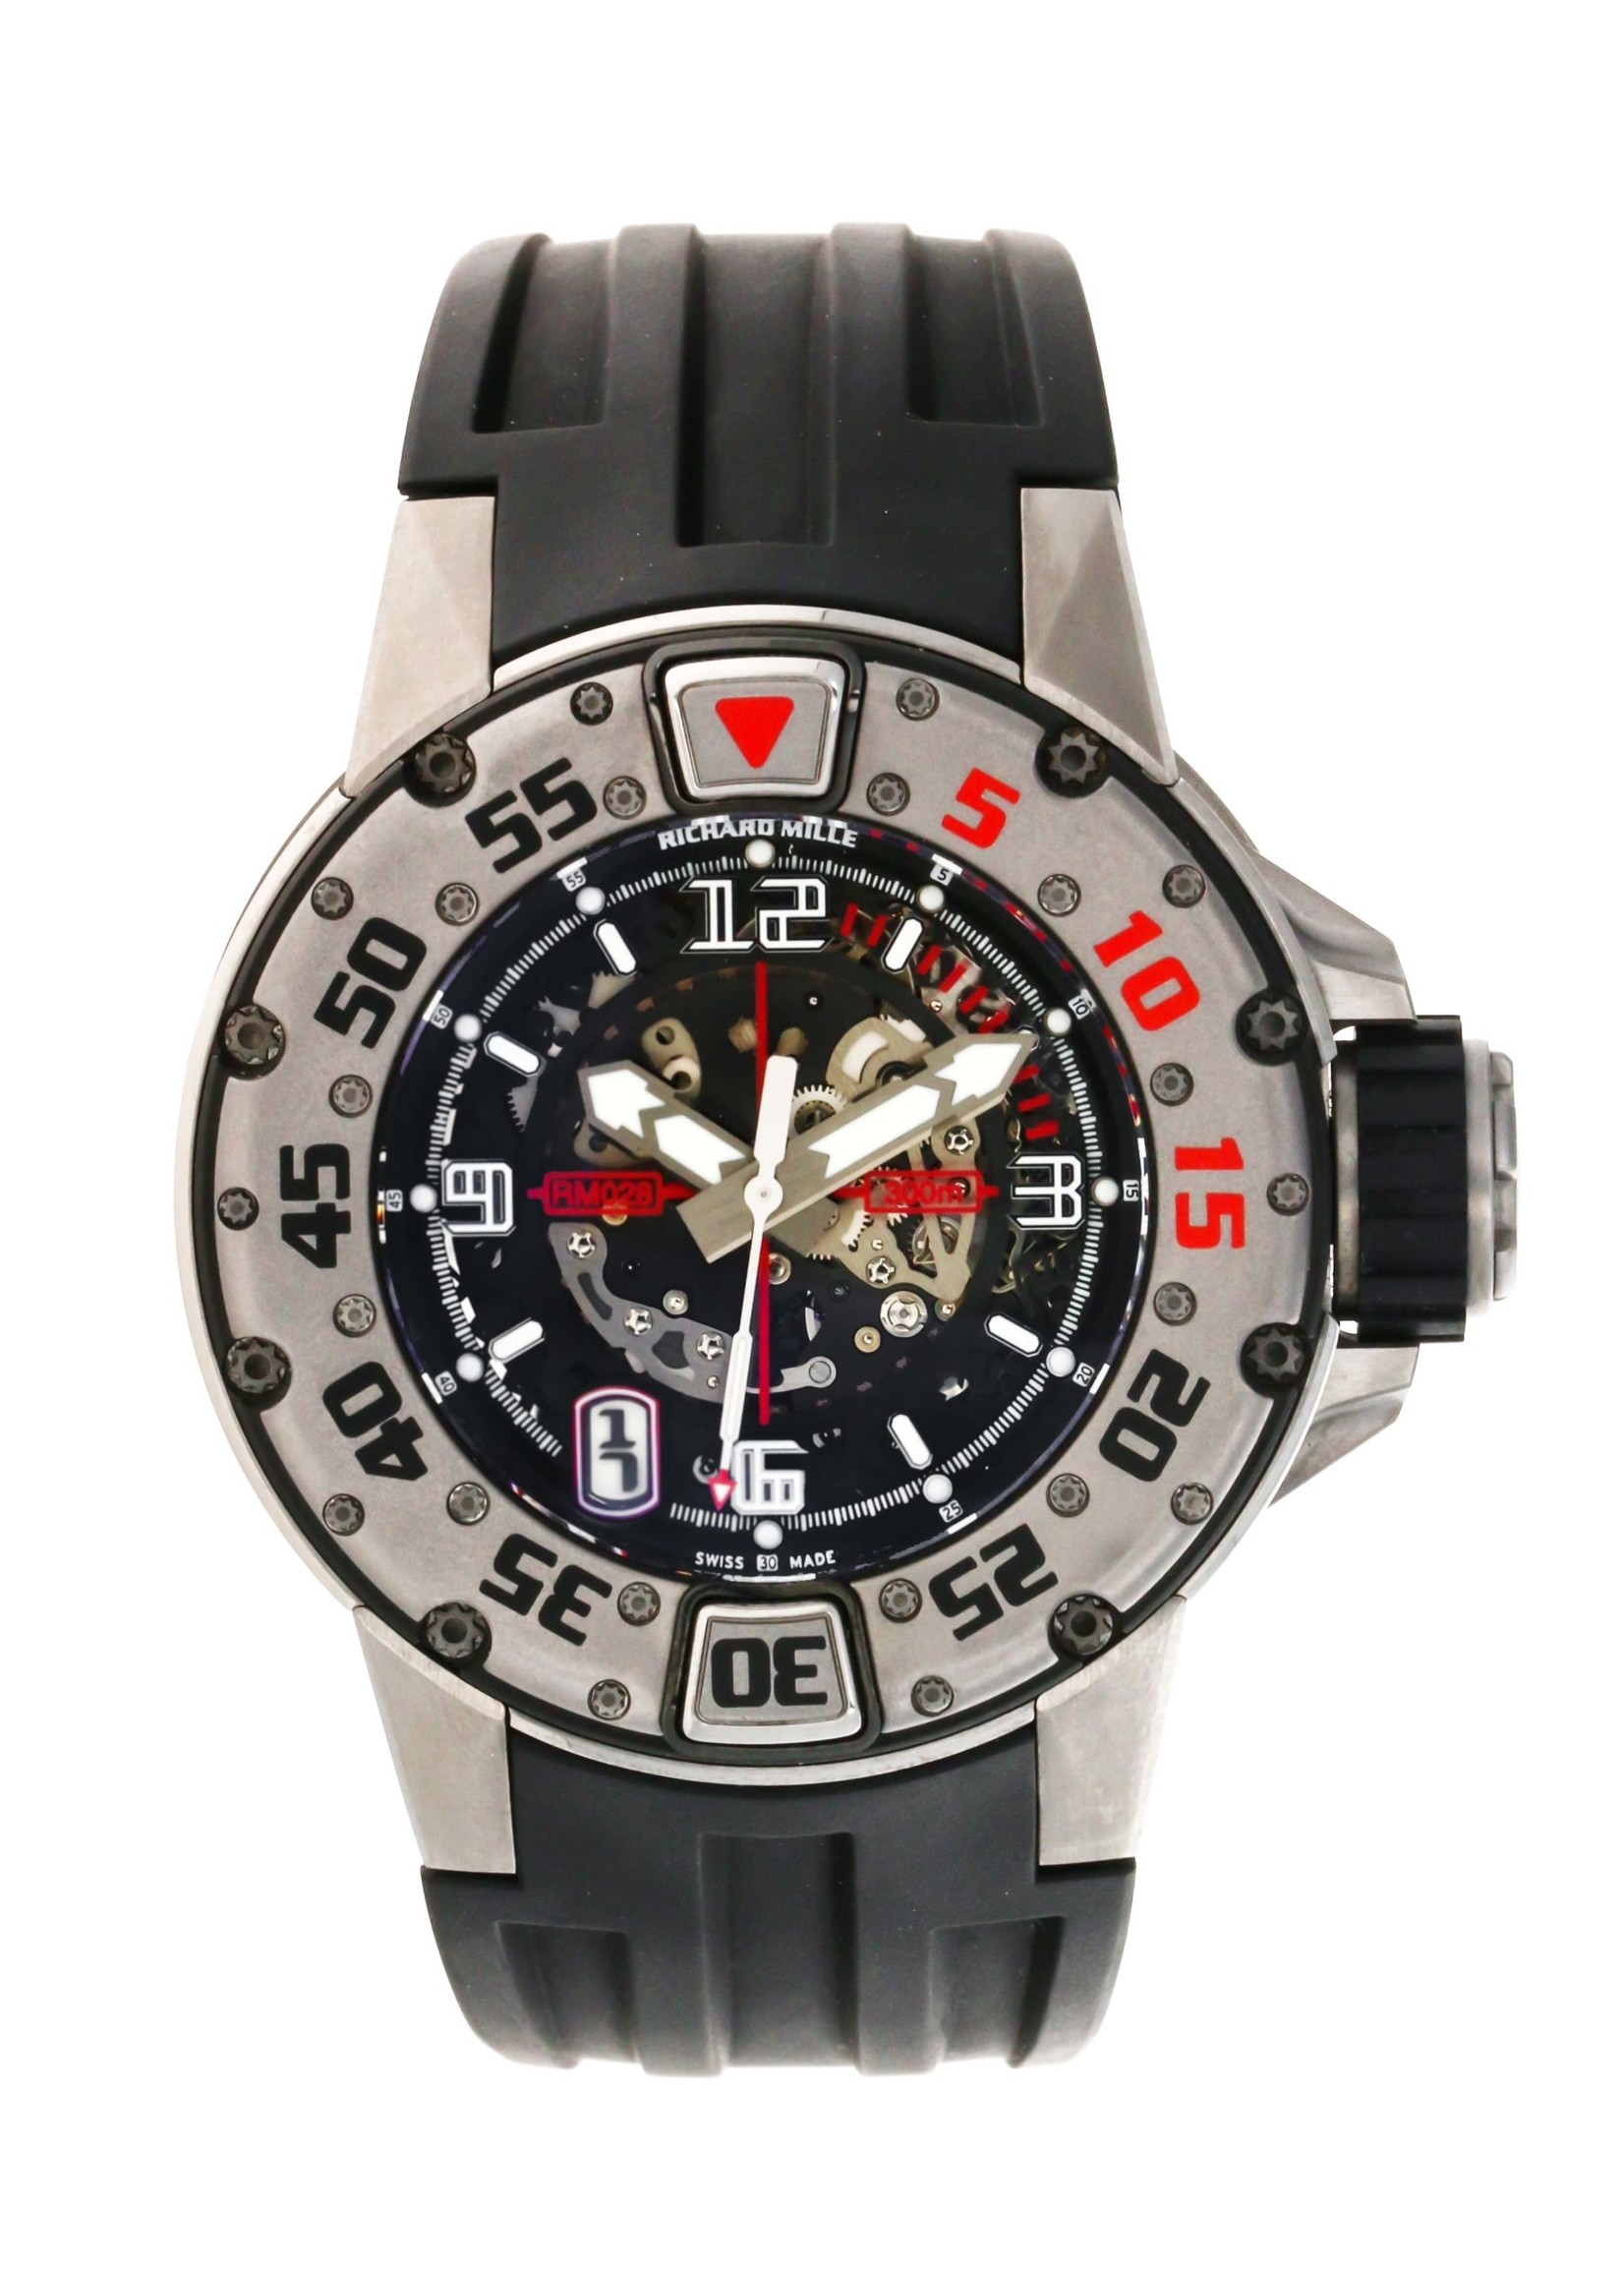 RICHARD MILLE Richard Mille RM 028 Diver (Fully Service at RM)